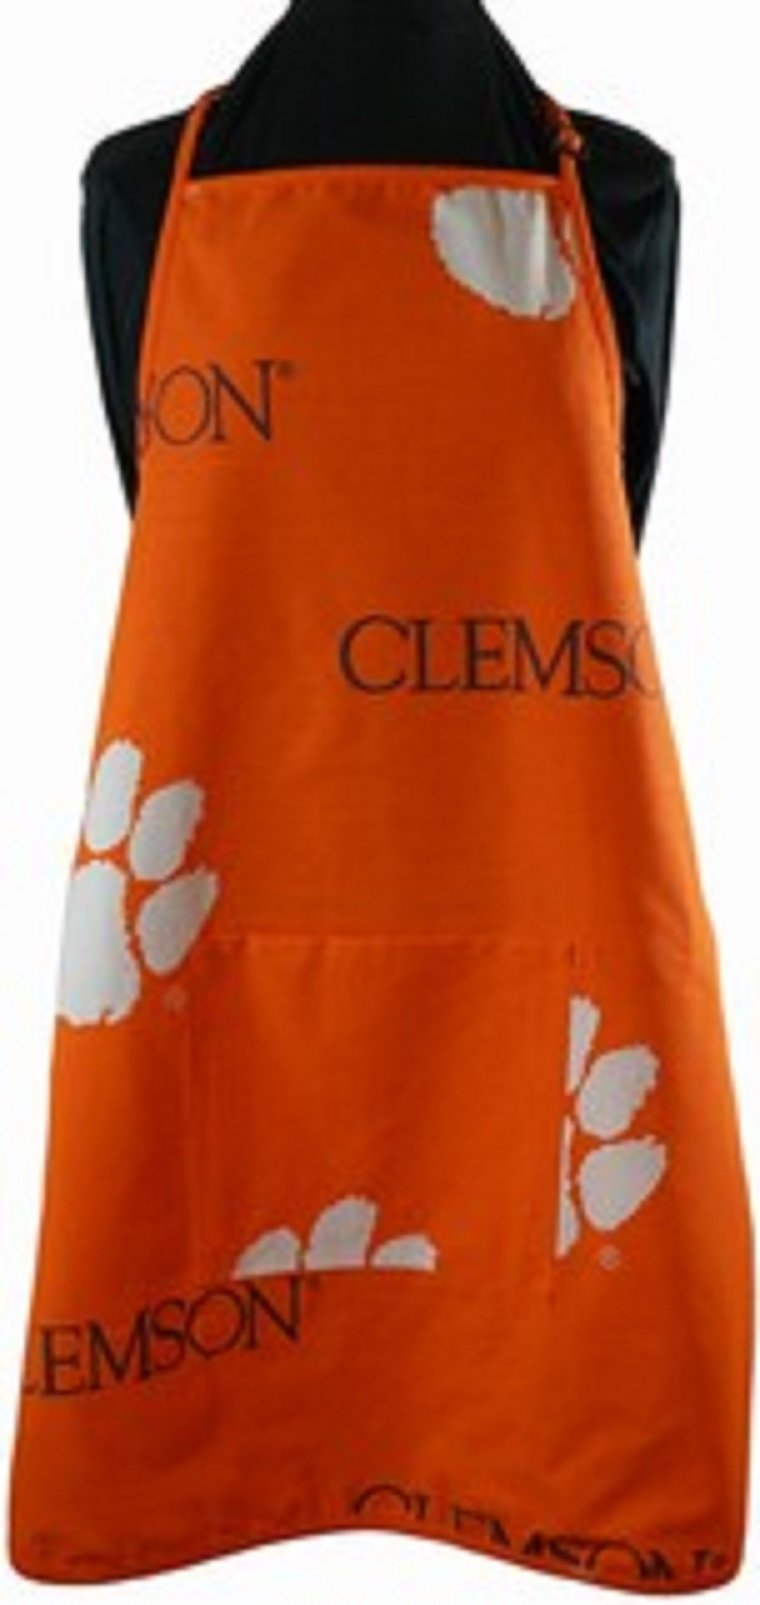 Clemson Tigers Grilling Apron and Set of (12) - Clemson Tigers Placemats w/ Border - Great for the Kitchen, or that Next Picnic or Tailgate Party! - Save Big By Bundling! -